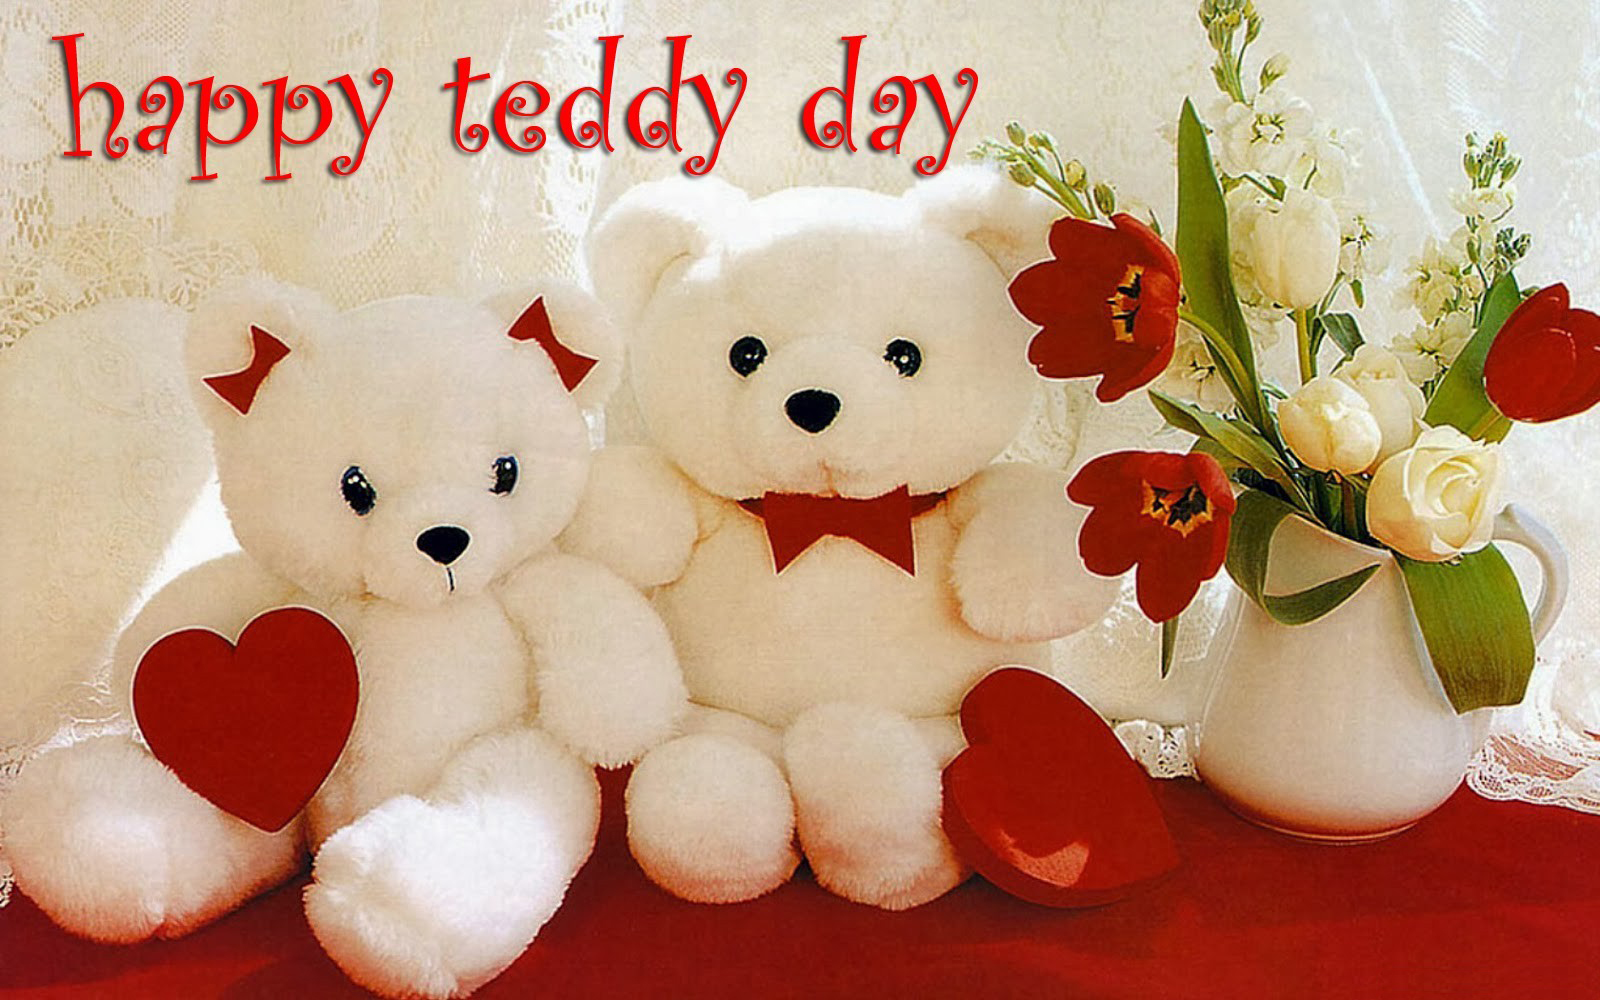 Happy Teddy day Images, Pics & Wallpapers 100+